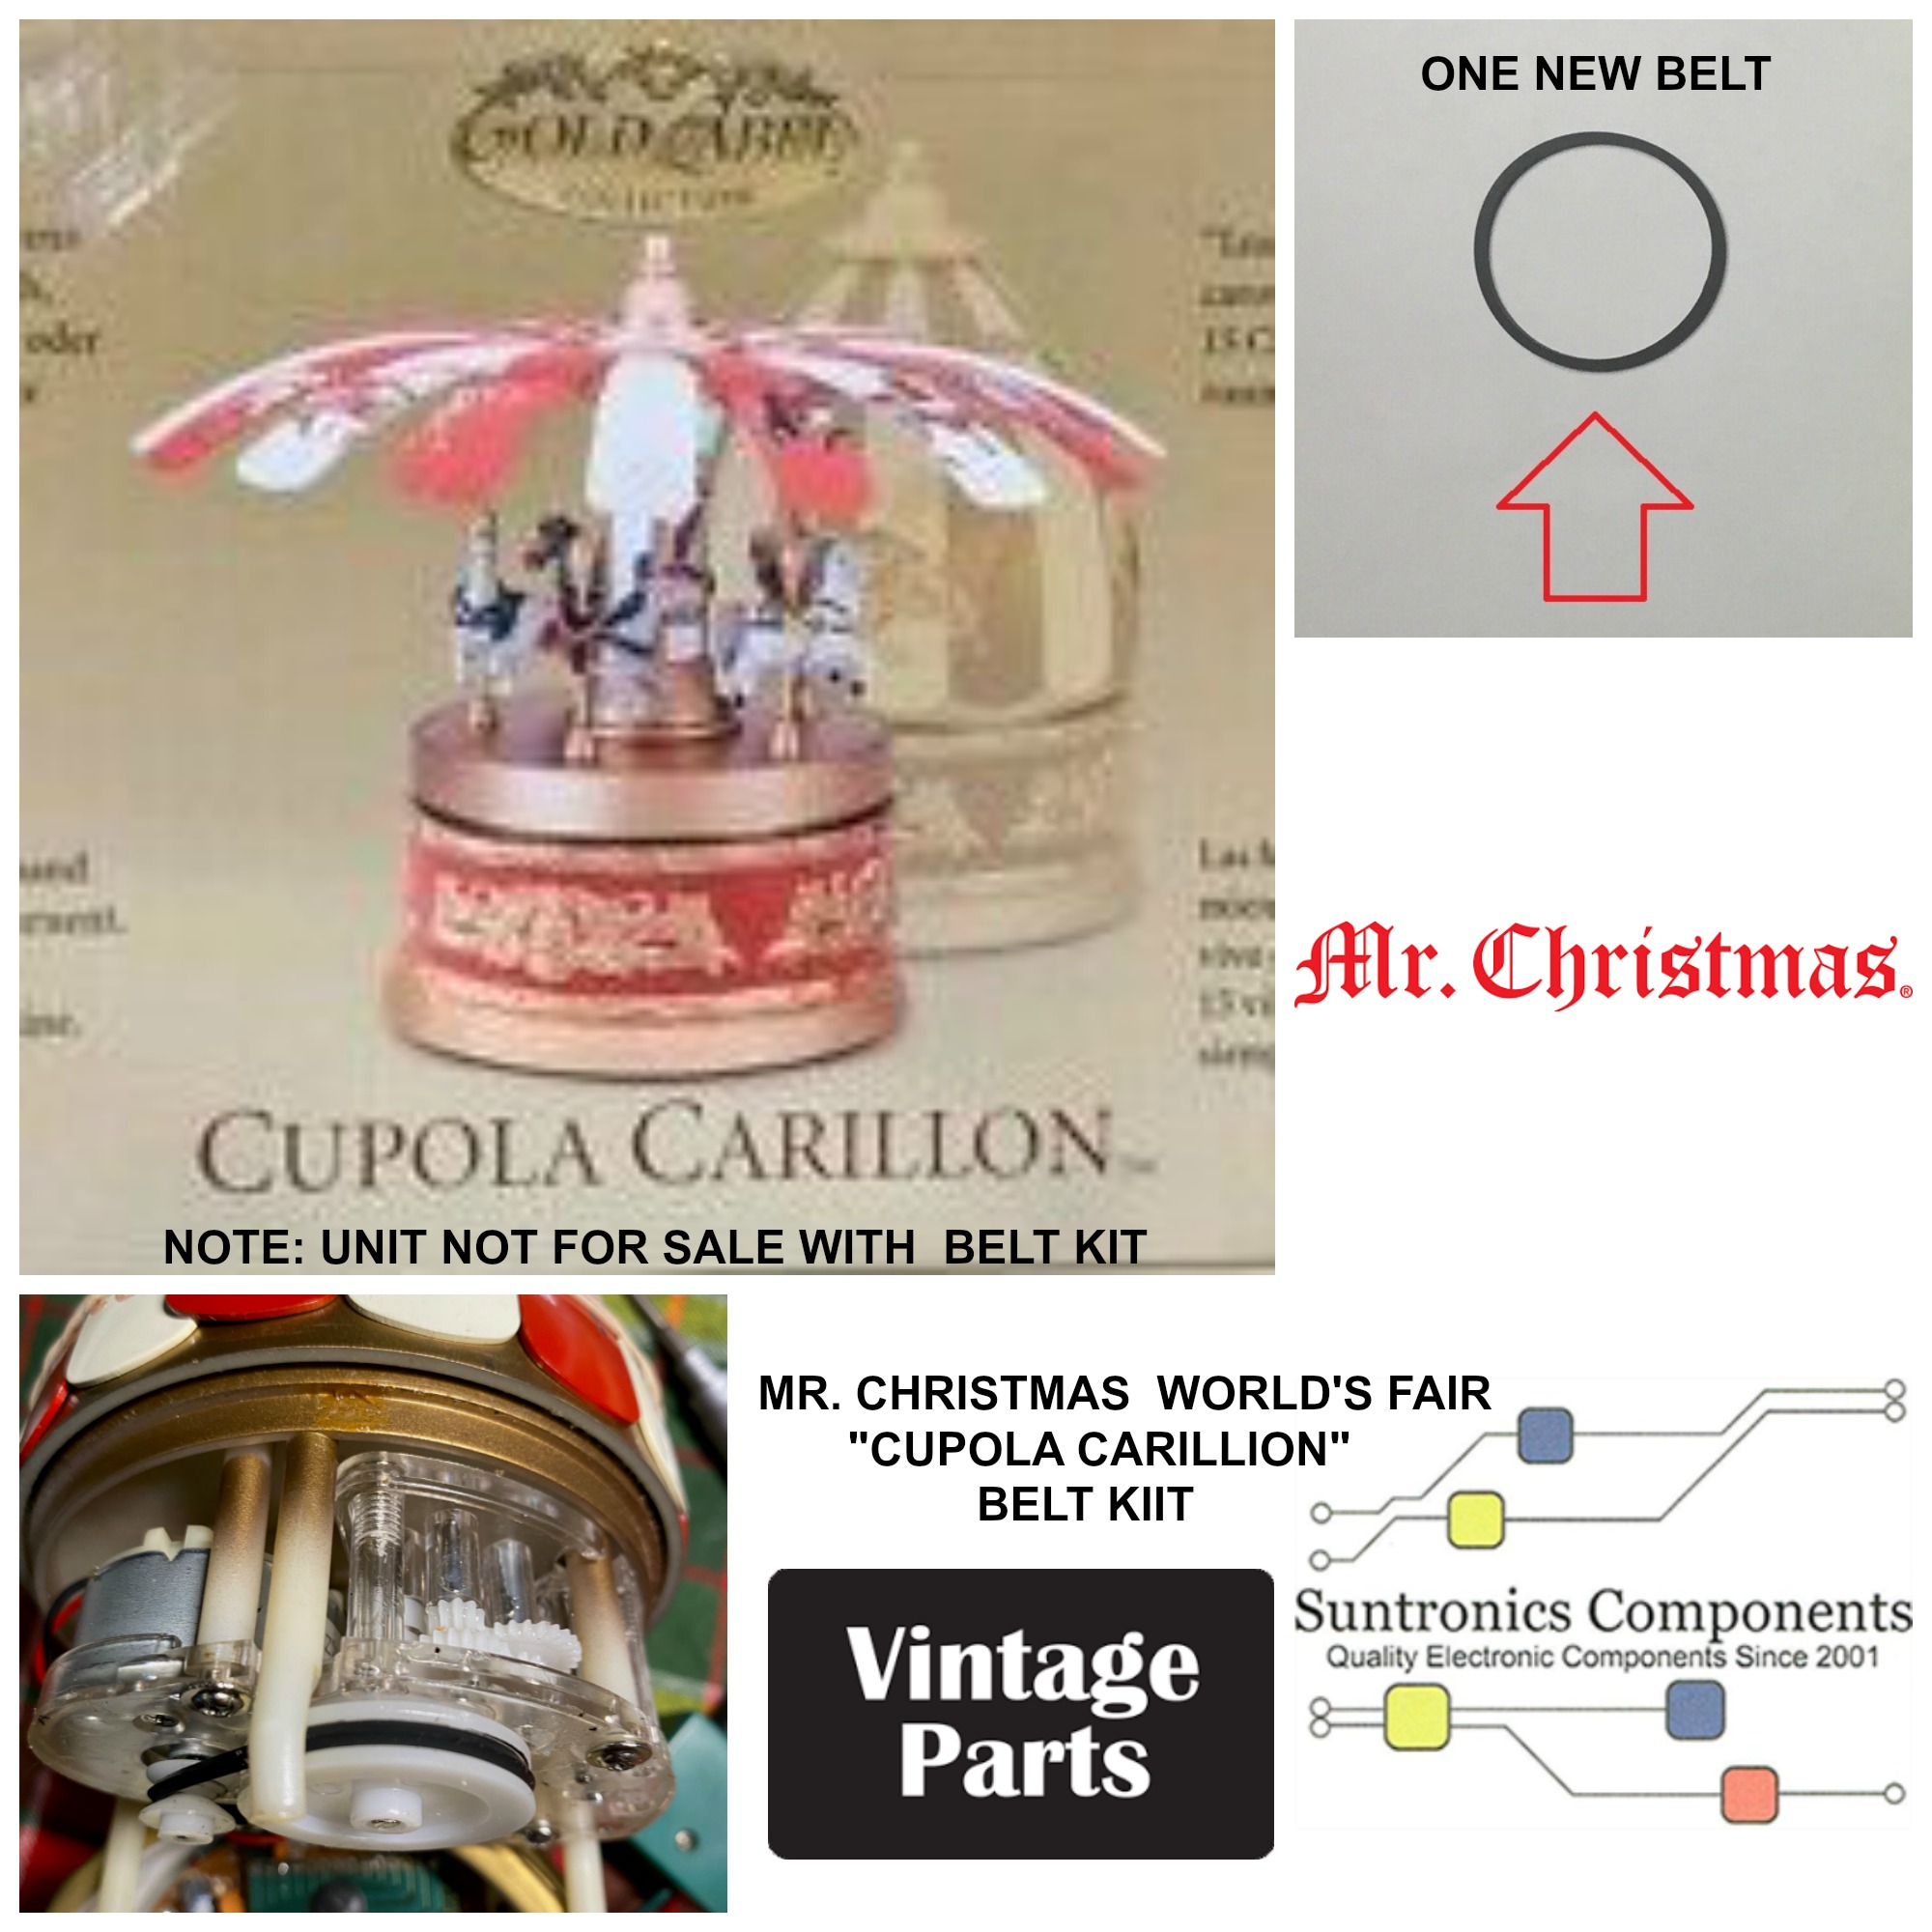 PicMonkey Image MR CHRISTMAS WORLDS FAIR